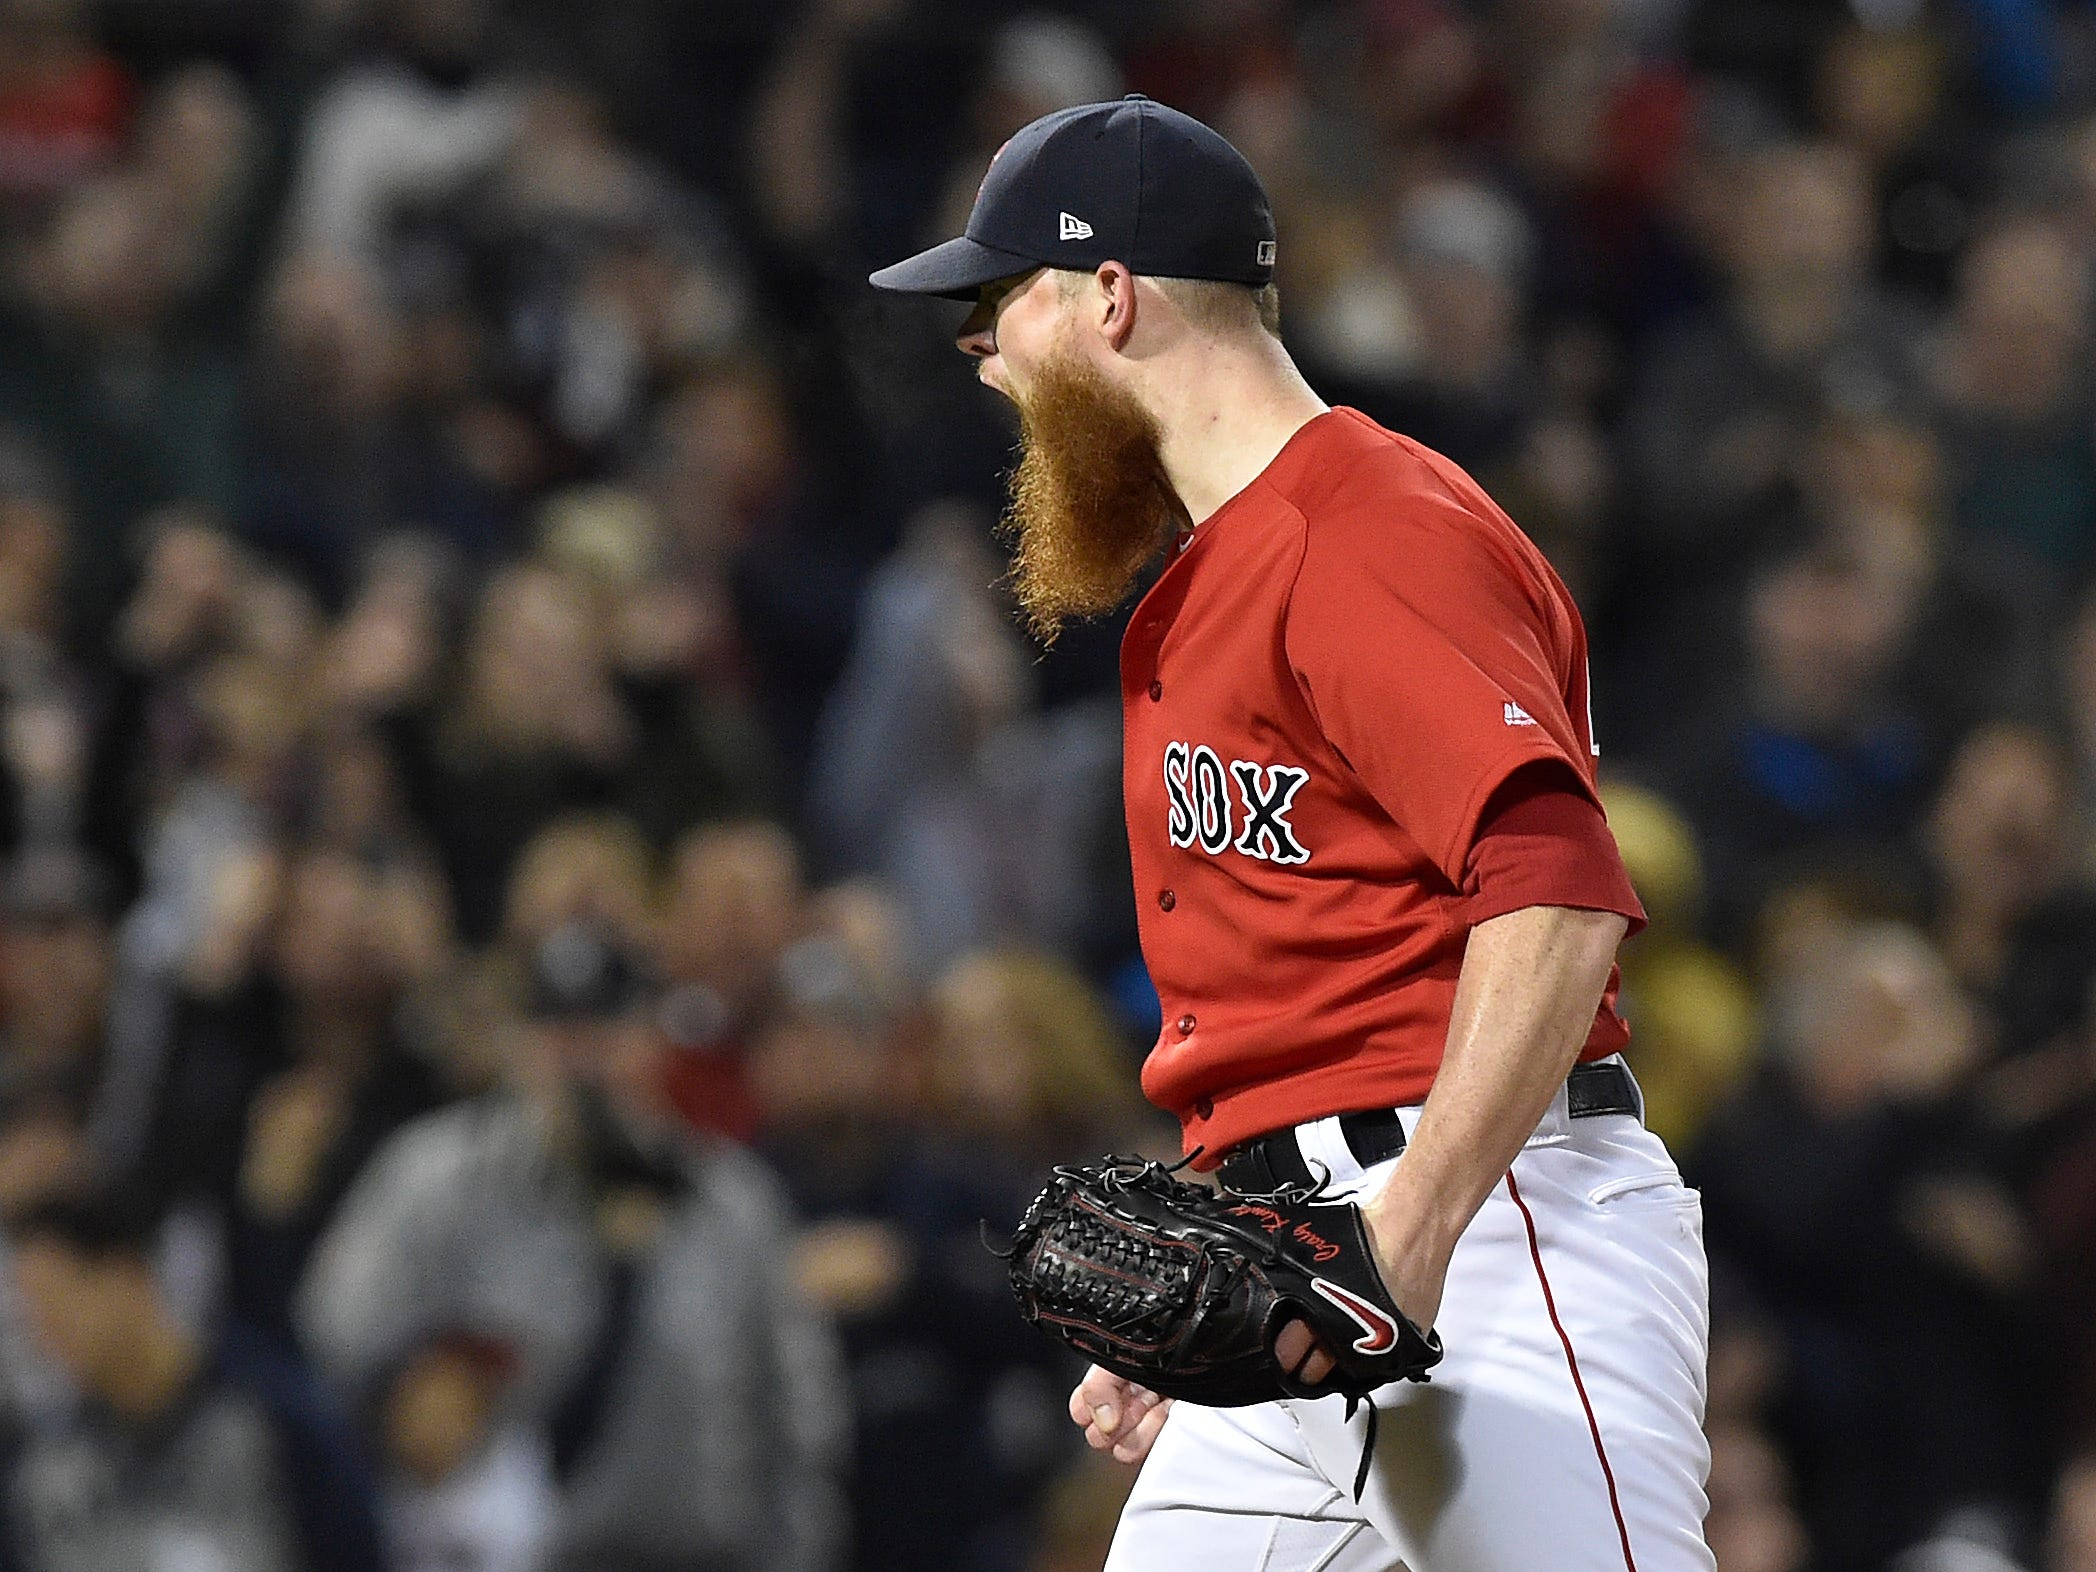 ALDS Game 1: Red Sox closer Craig Kimbrel earns a four-out save against the Yankees.